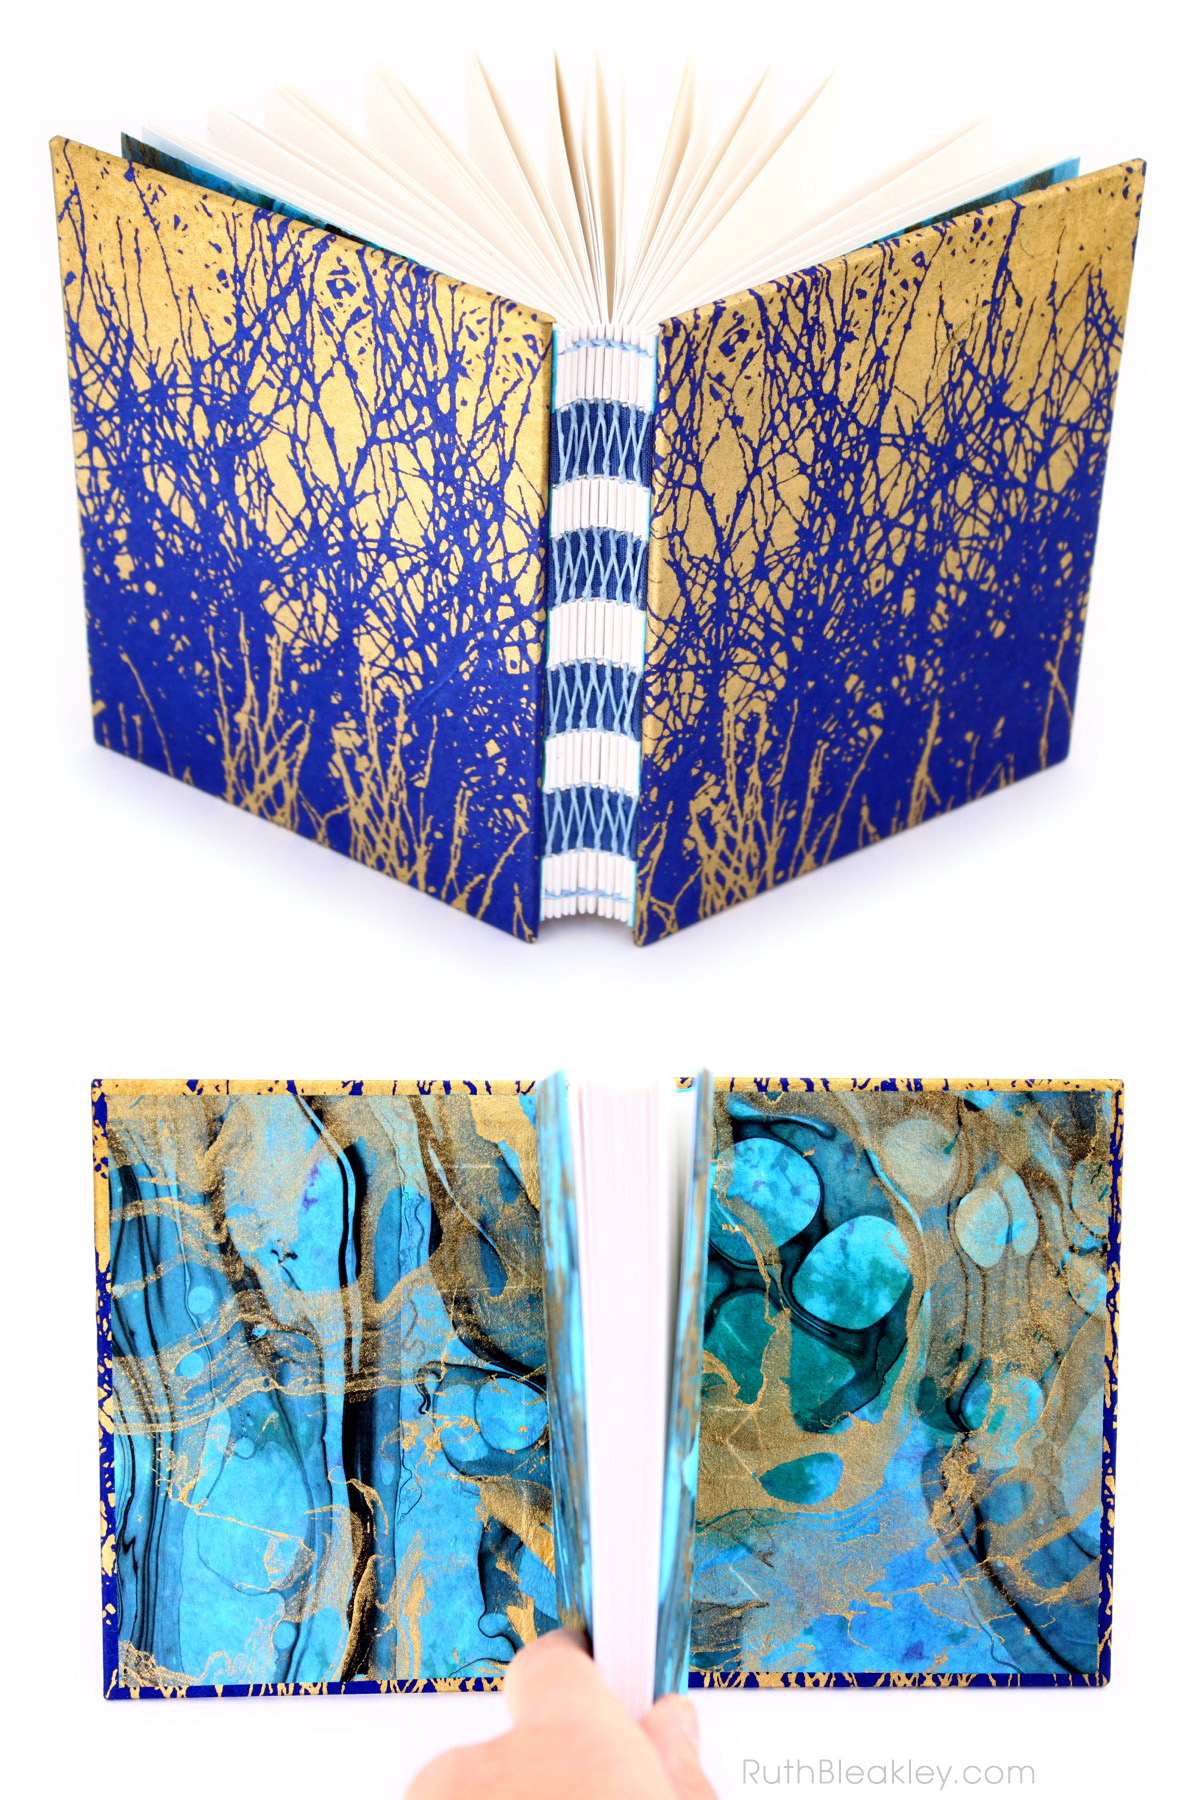 Bookbinding with French Link Stitch handmade journal by Ruth Bleakley